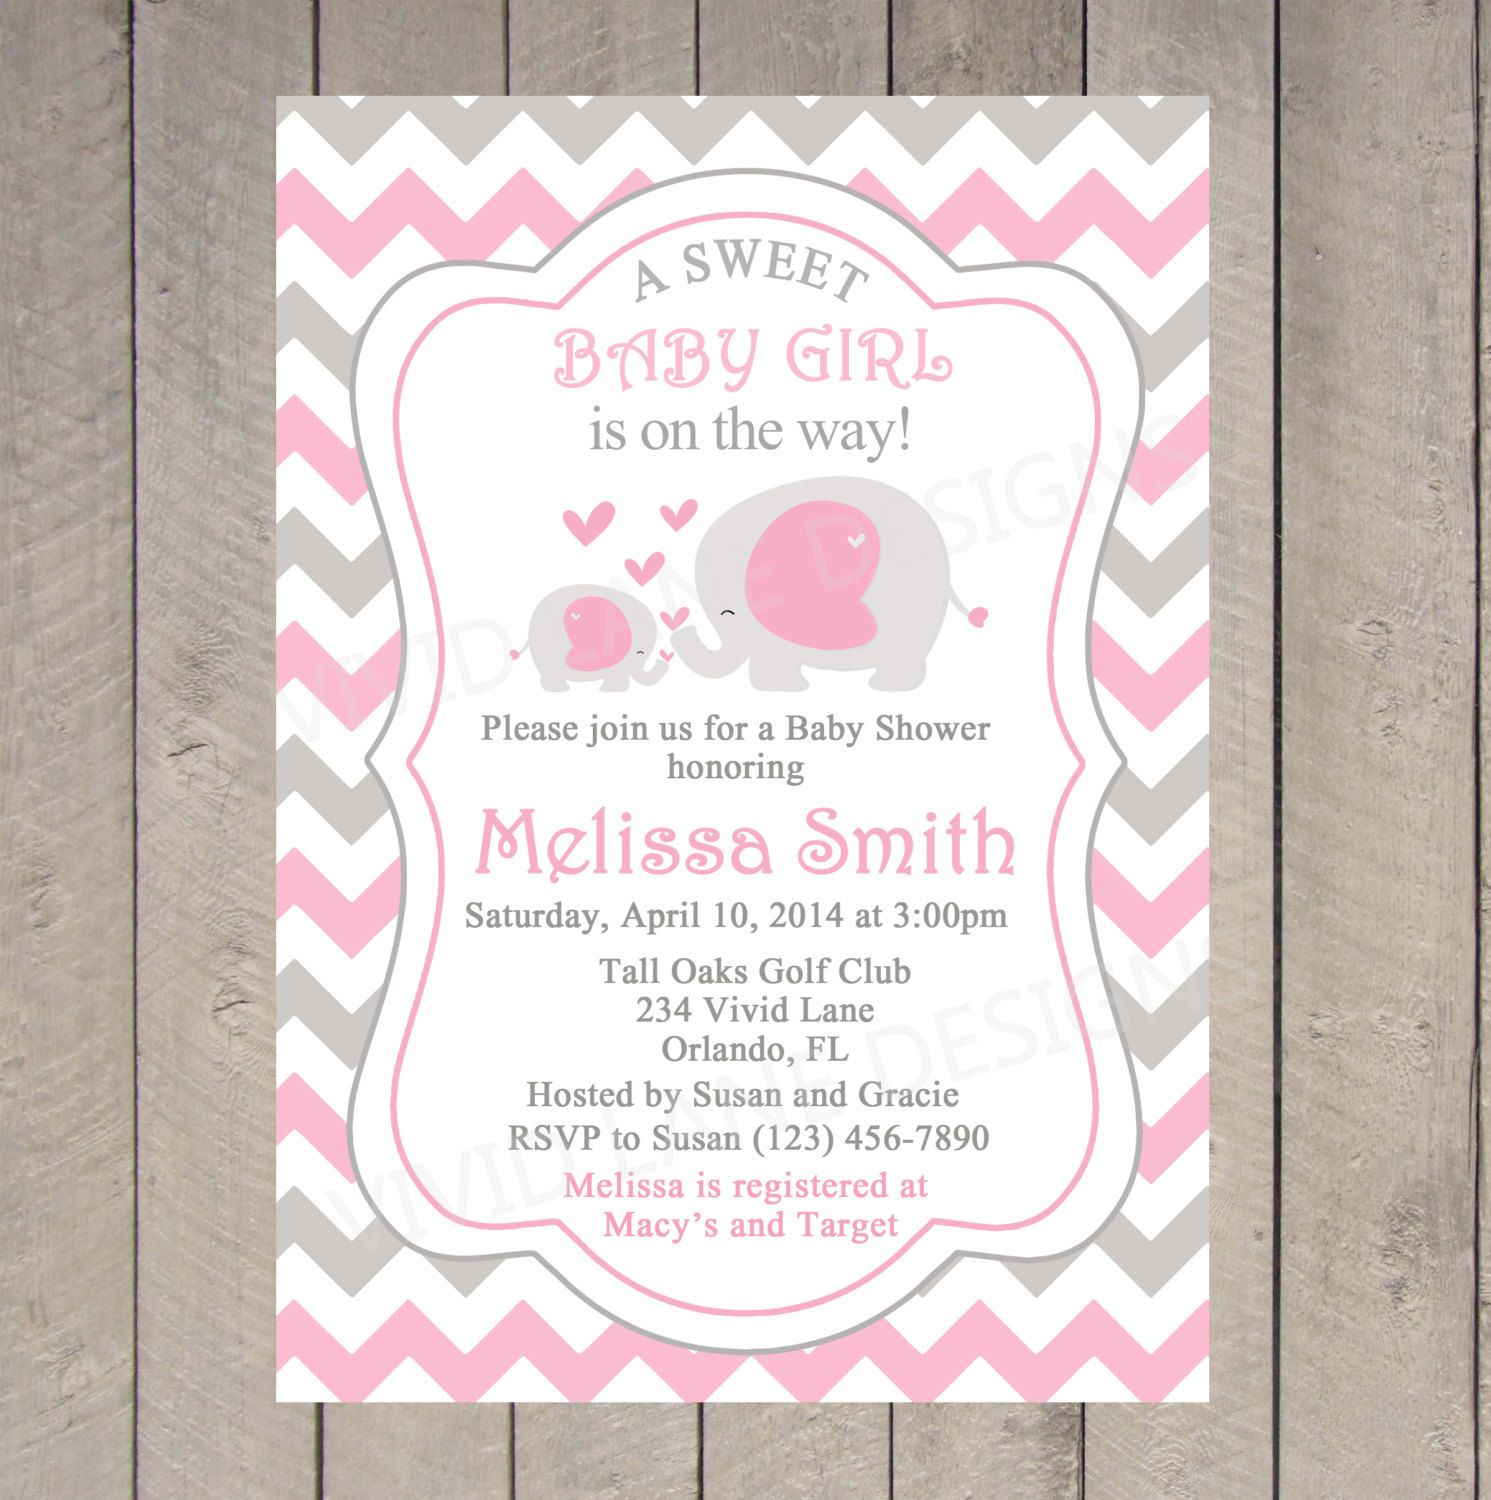 Elephants baby shower invitation printable by vividlanedesigns elephants baby shower invitation printable by vividlanedesigns filmwisefo